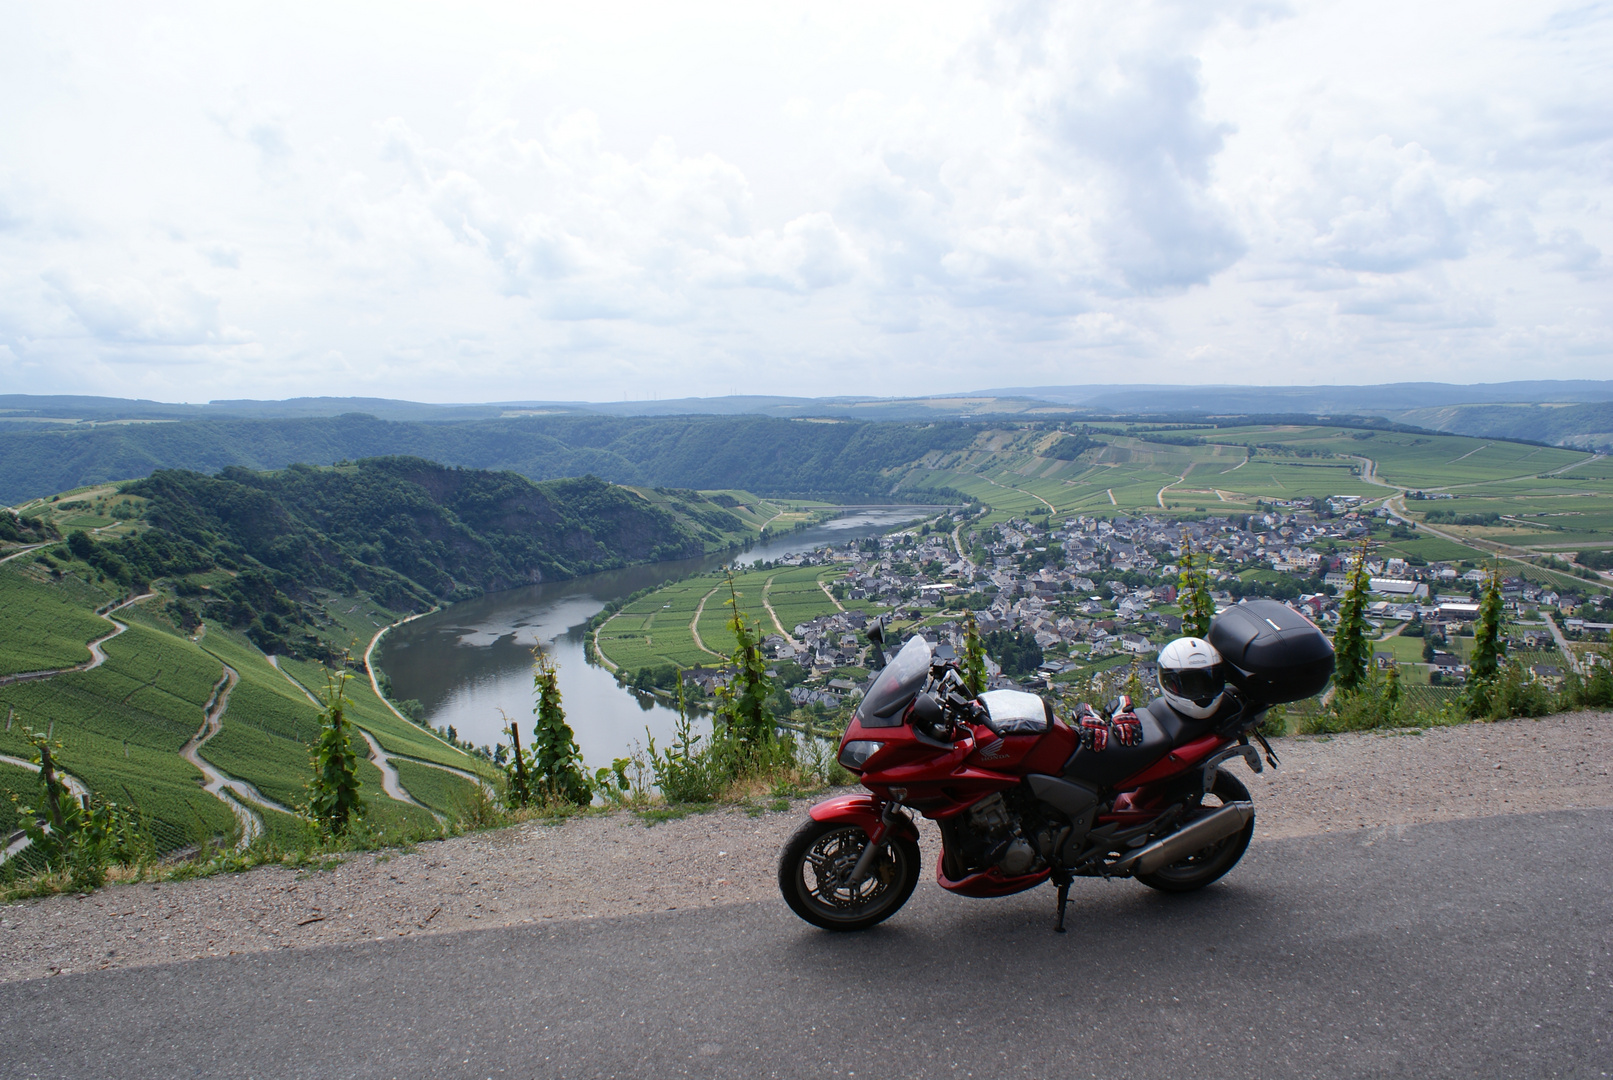 Holiday on Motorcycle